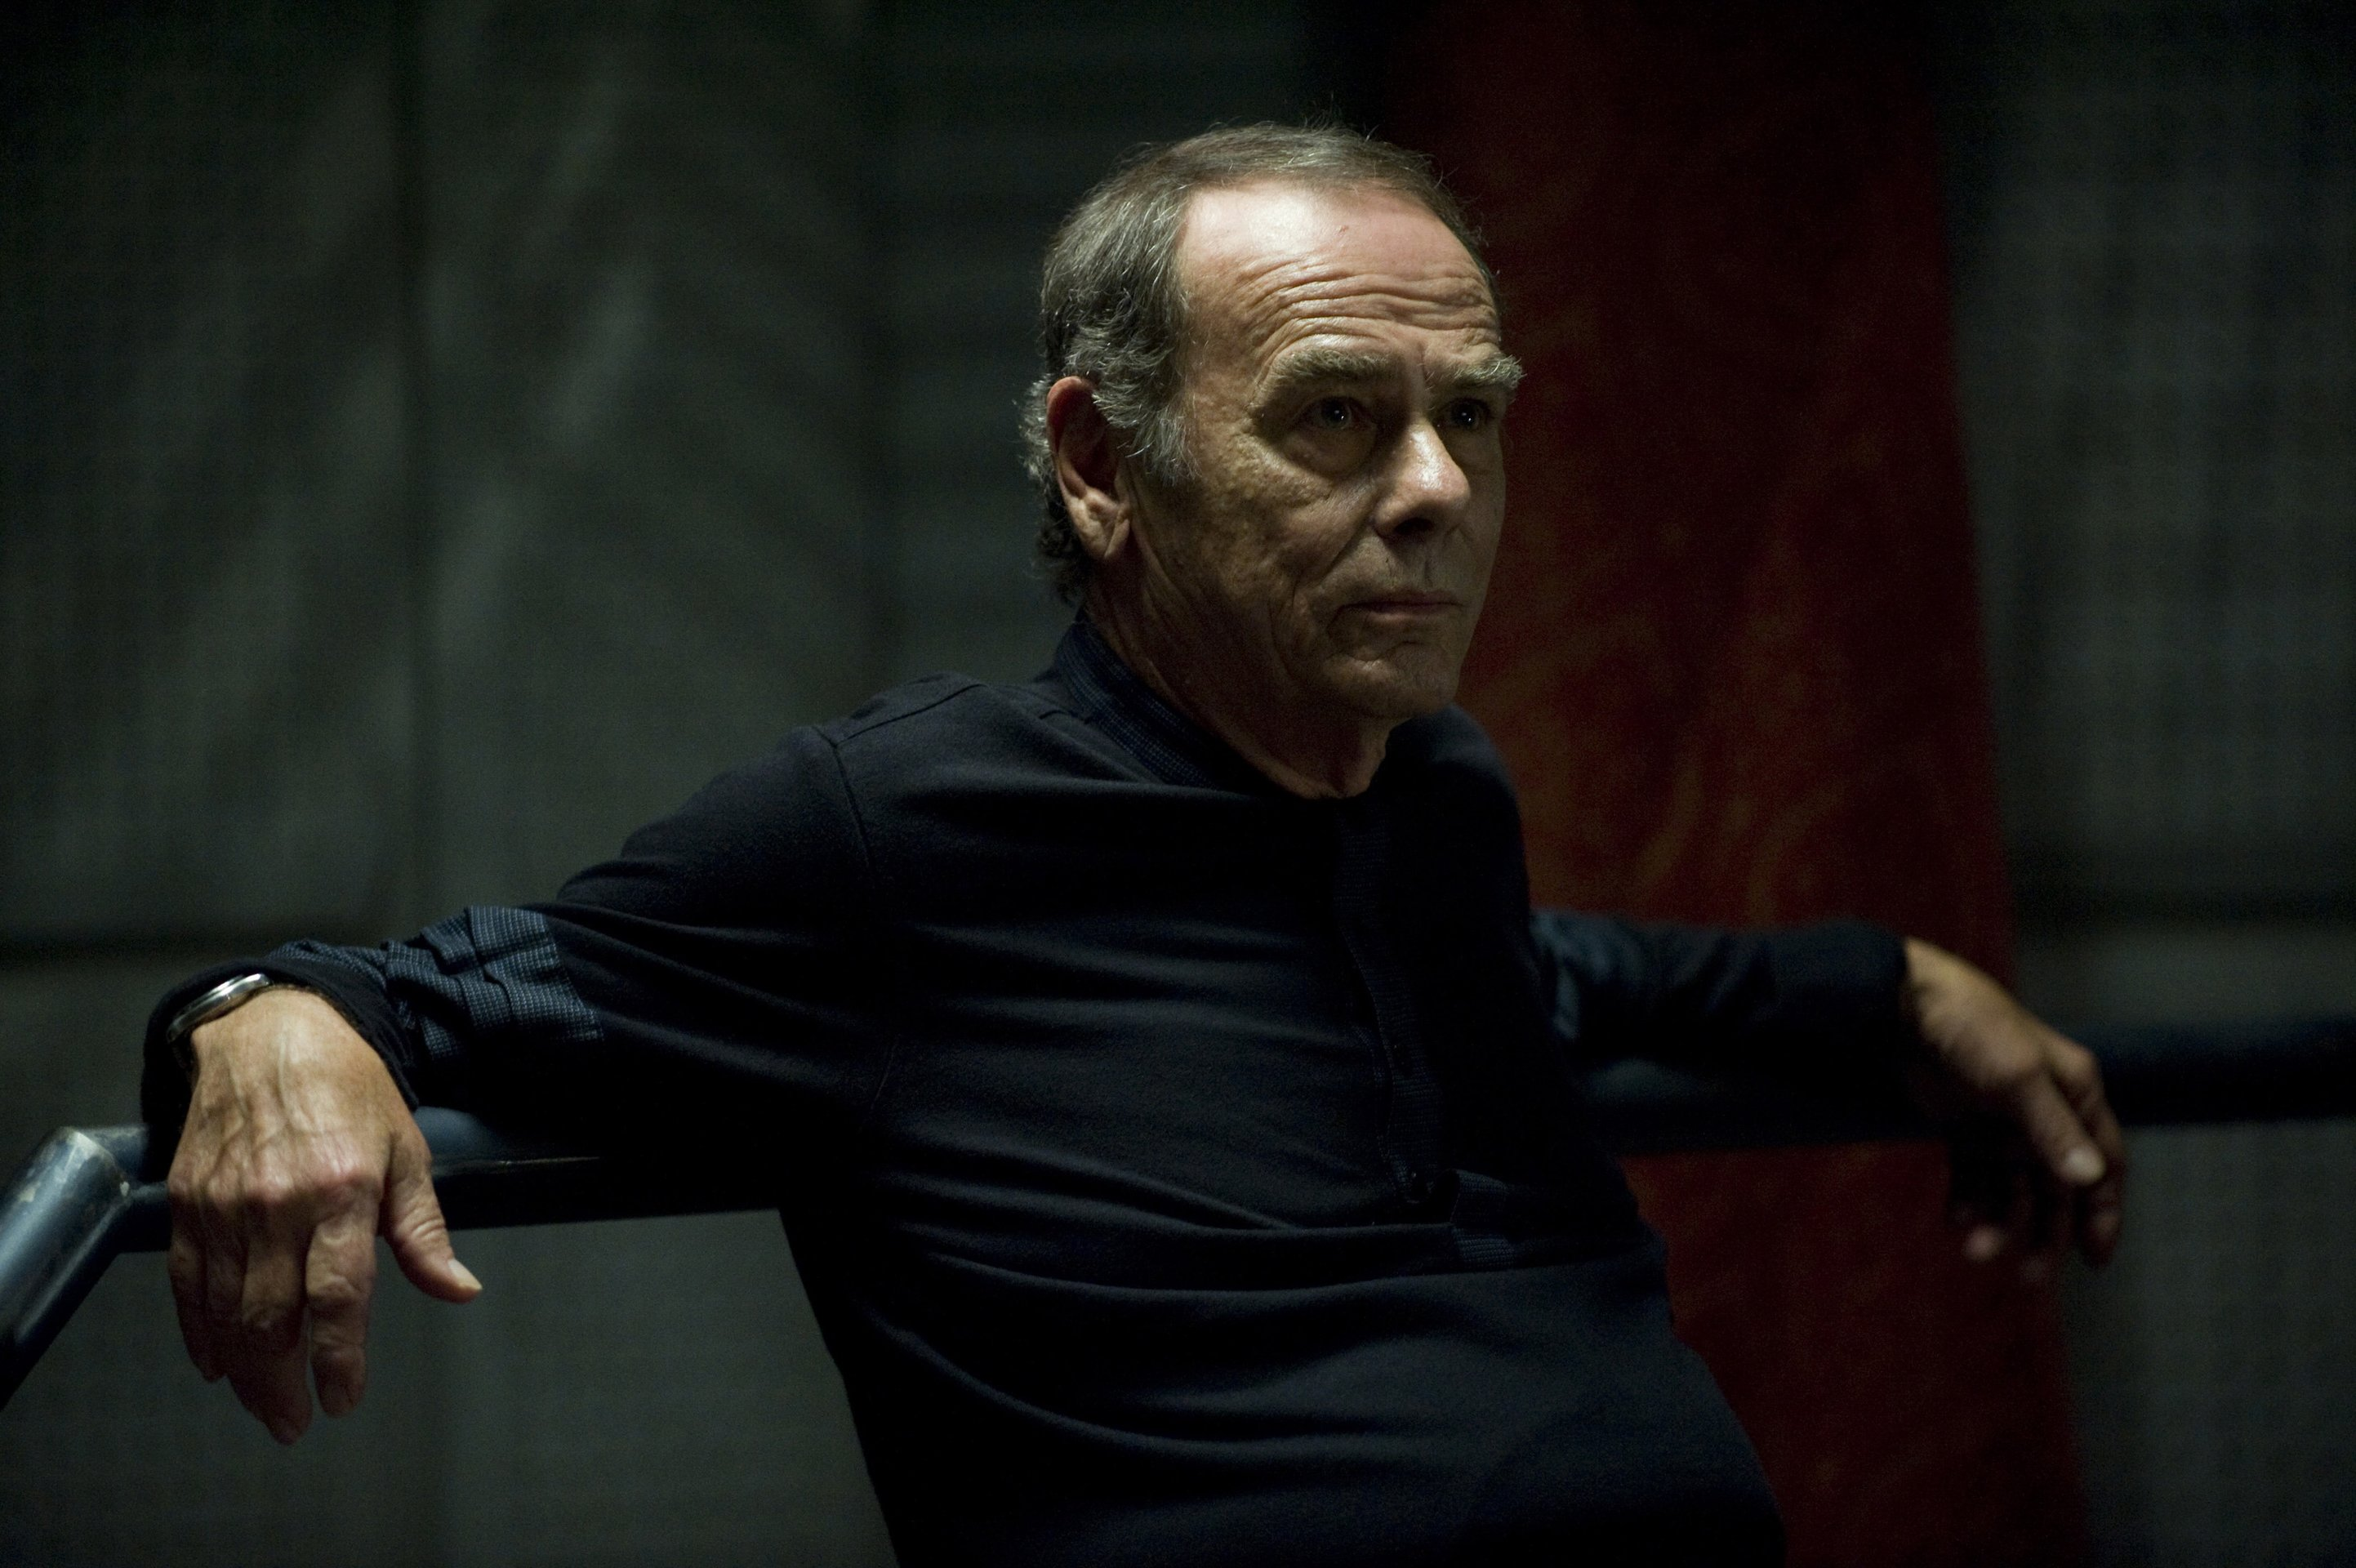 Dean Stockwell as the Cylon leader No 1 in Battlestar Galactica: The Plan (2009)